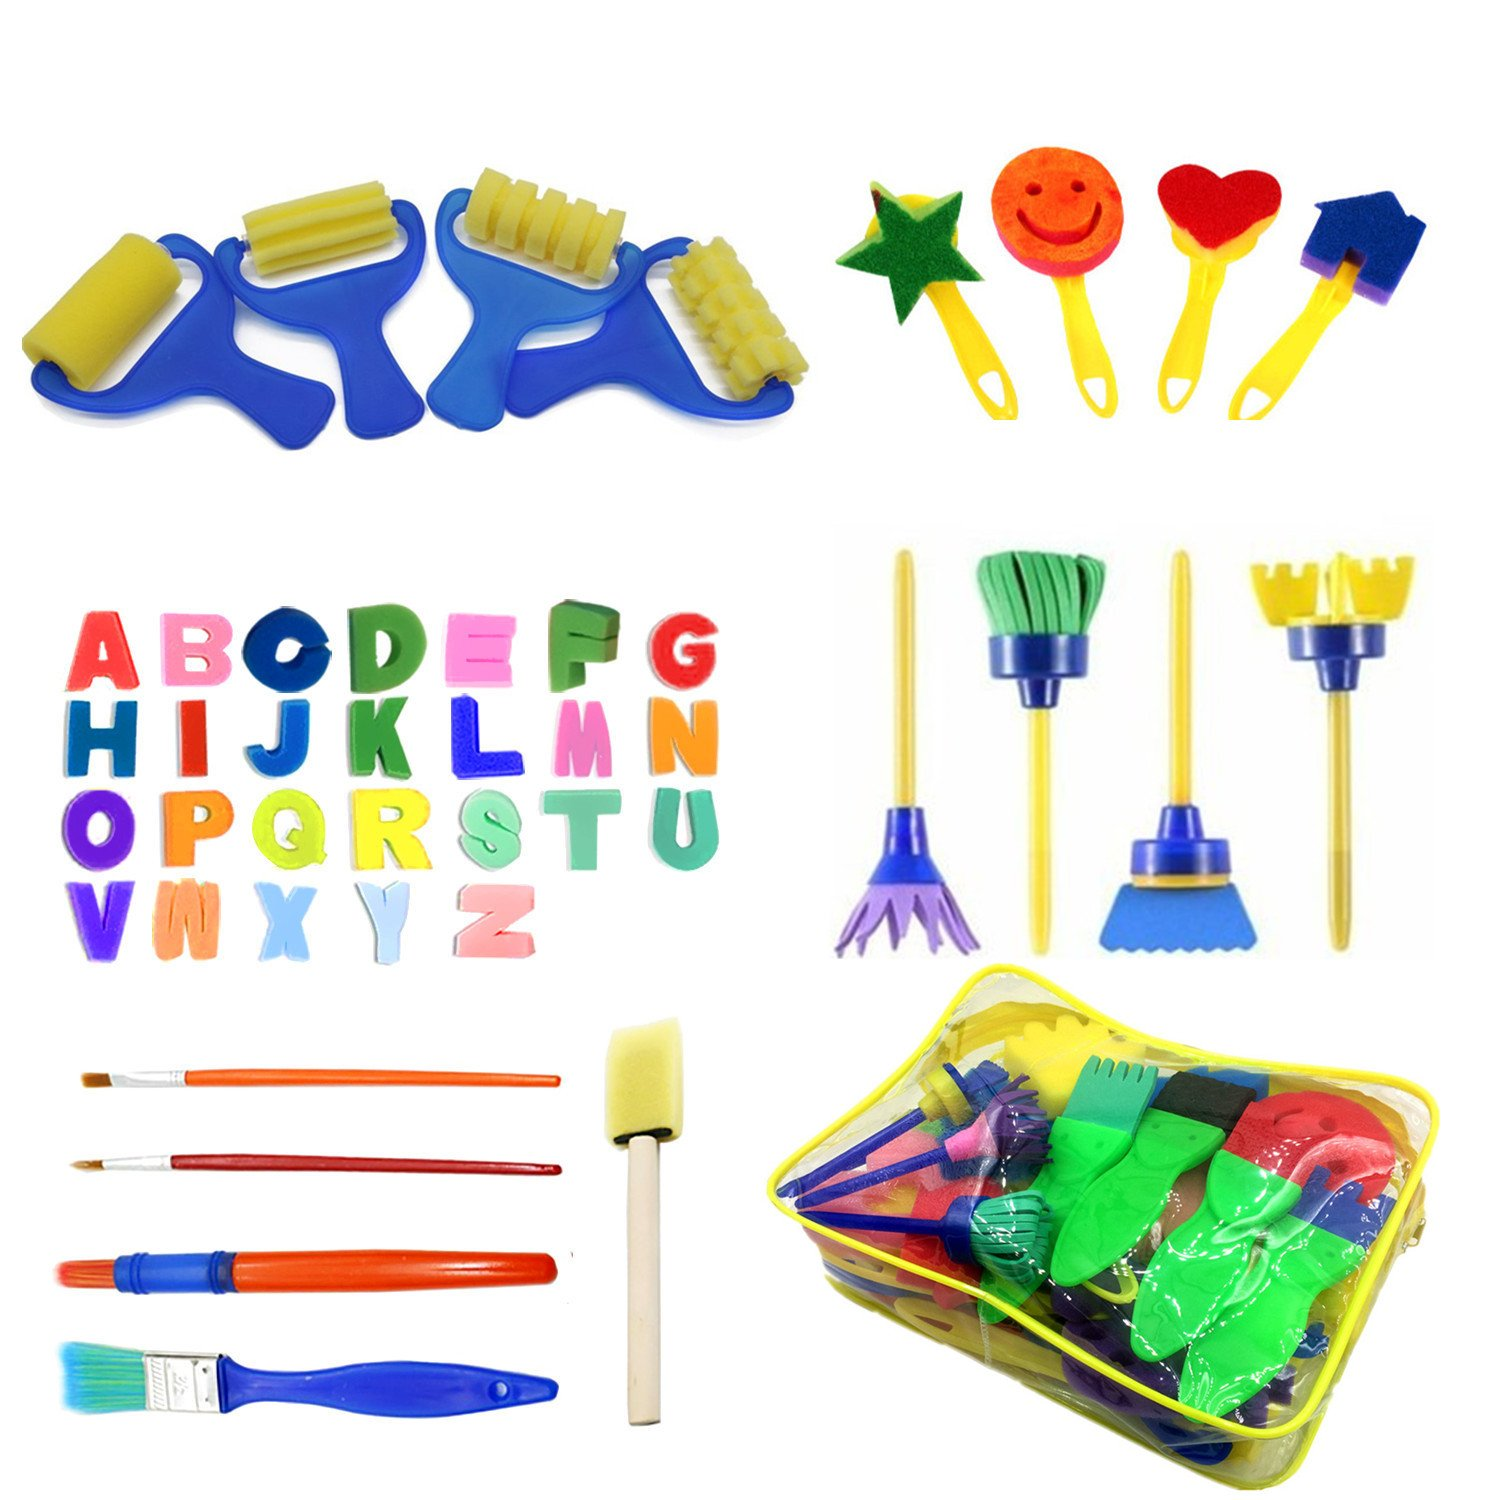 48pcs Kids Art & Craft Early Learning Painting Sponges Stamper Mini Paint Brushes Kit with 26 English Alphabets Drawing Tools (with Bag) Lumsbright